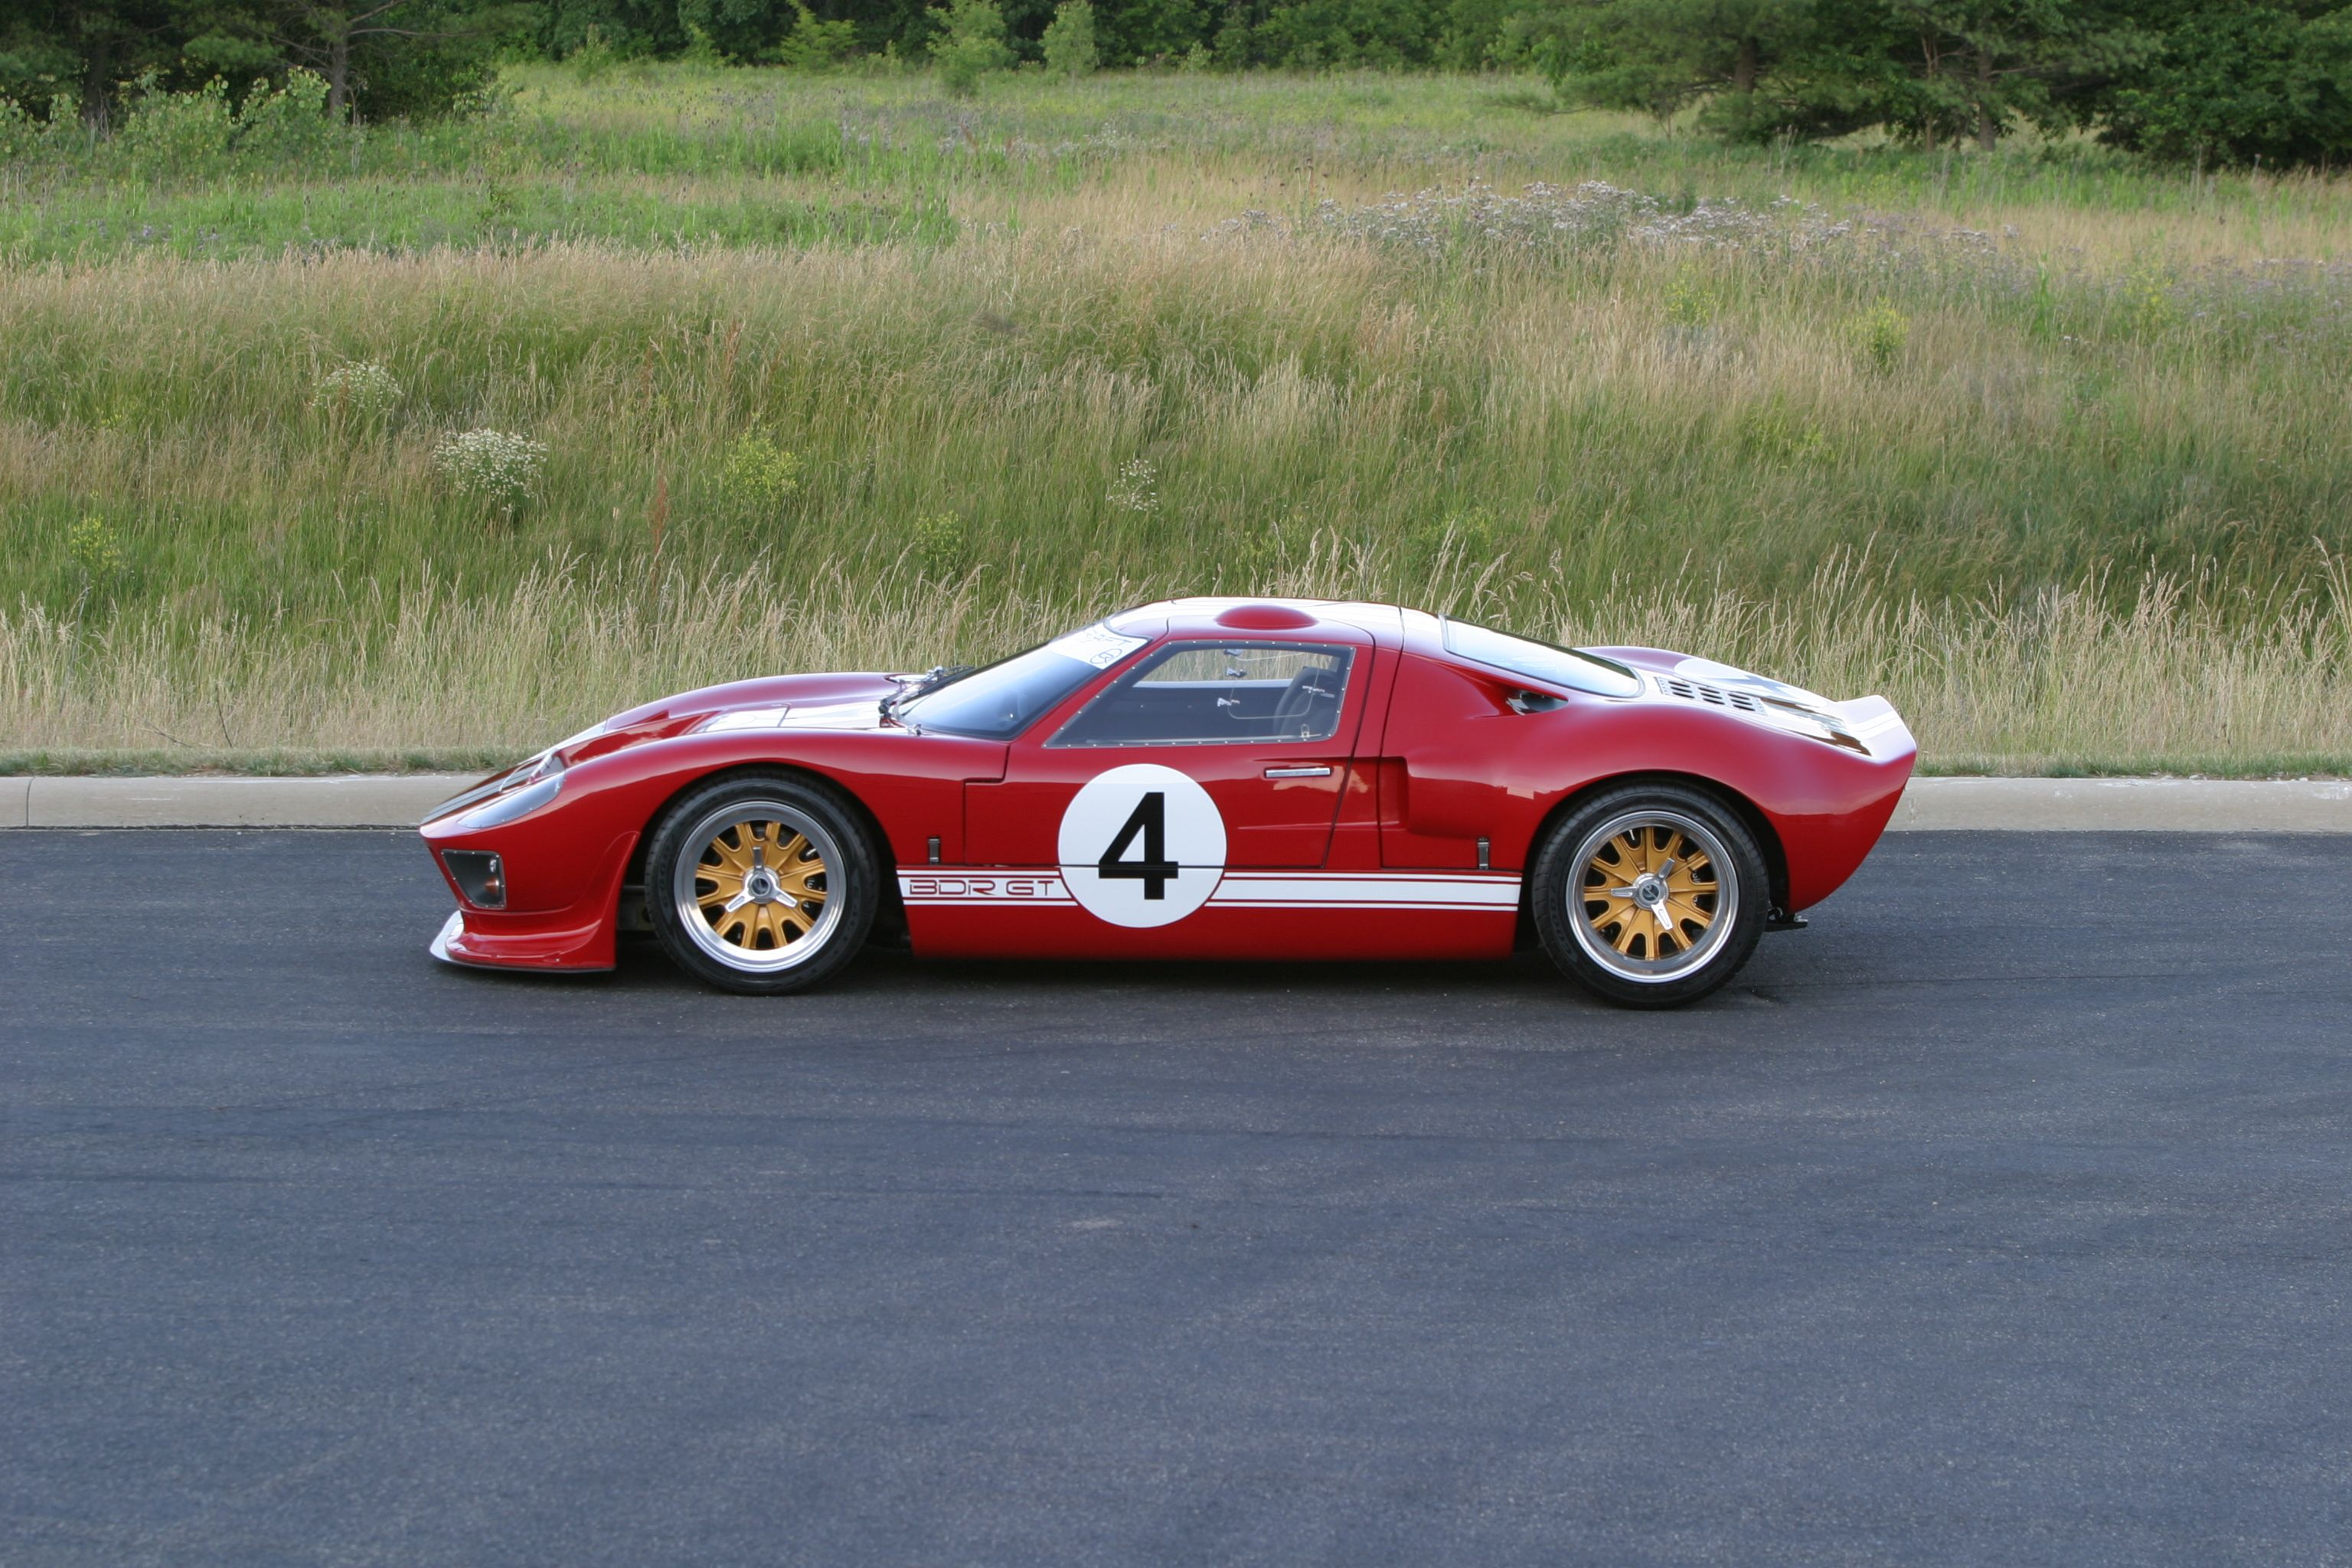 gt40 kit car - Google Search | Avid - Industrial Design - Automobile | Pinterest | Kit cars Ford GT and Car magazine & gt40 kit car - Google Search | Avid - Industrial Design ... markmcfarlin.com